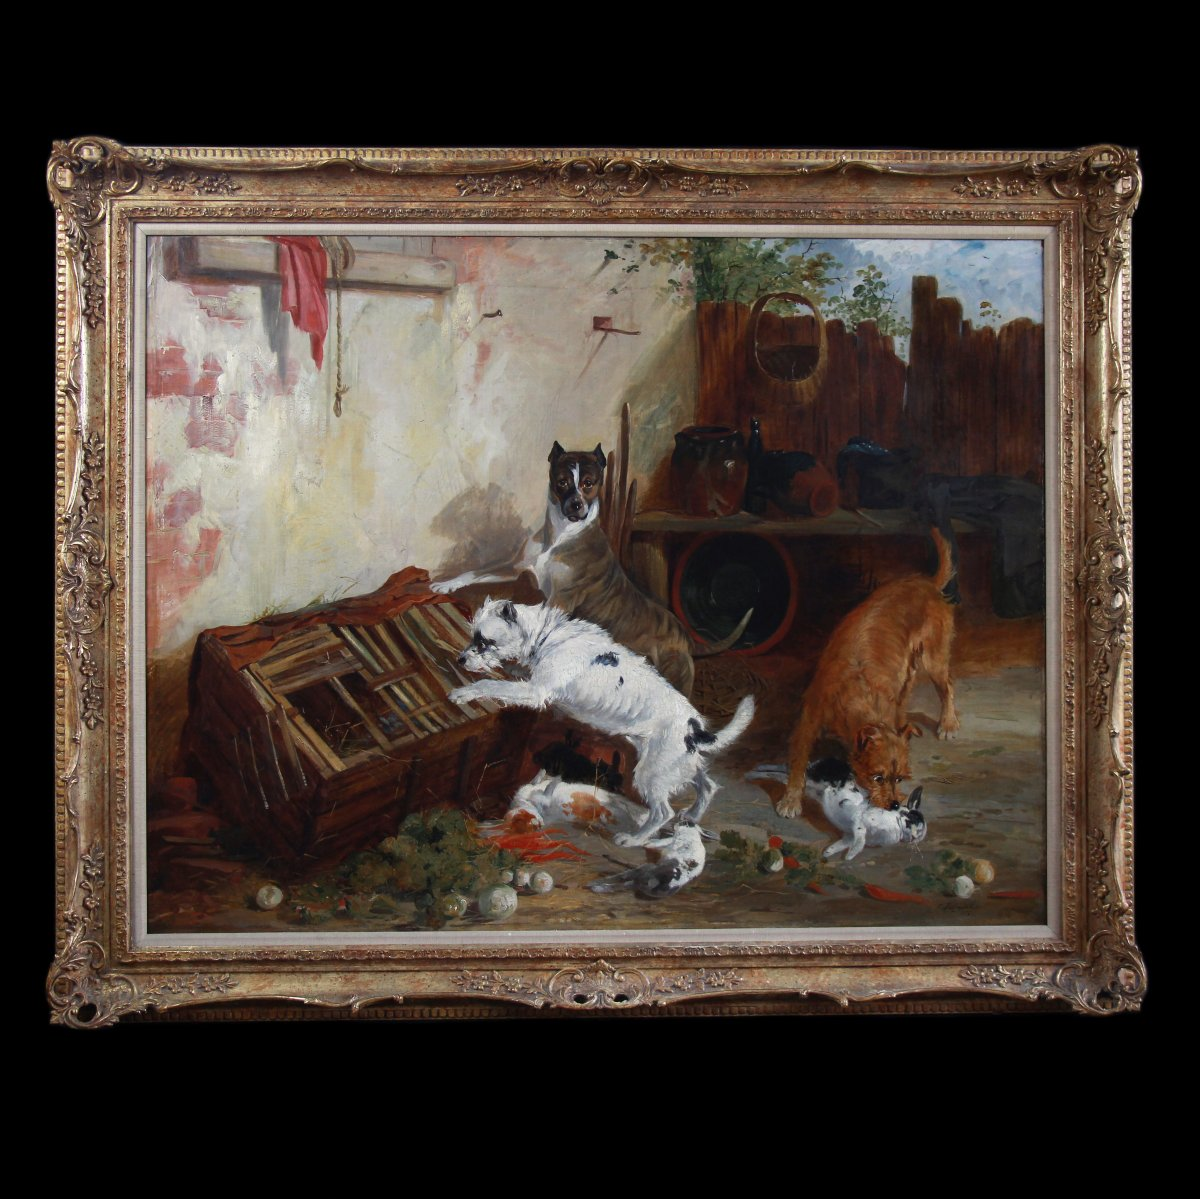 Paintings Oil On Canvas, Scene With Terrier Dogs And Rabbits By Richard Ansdell